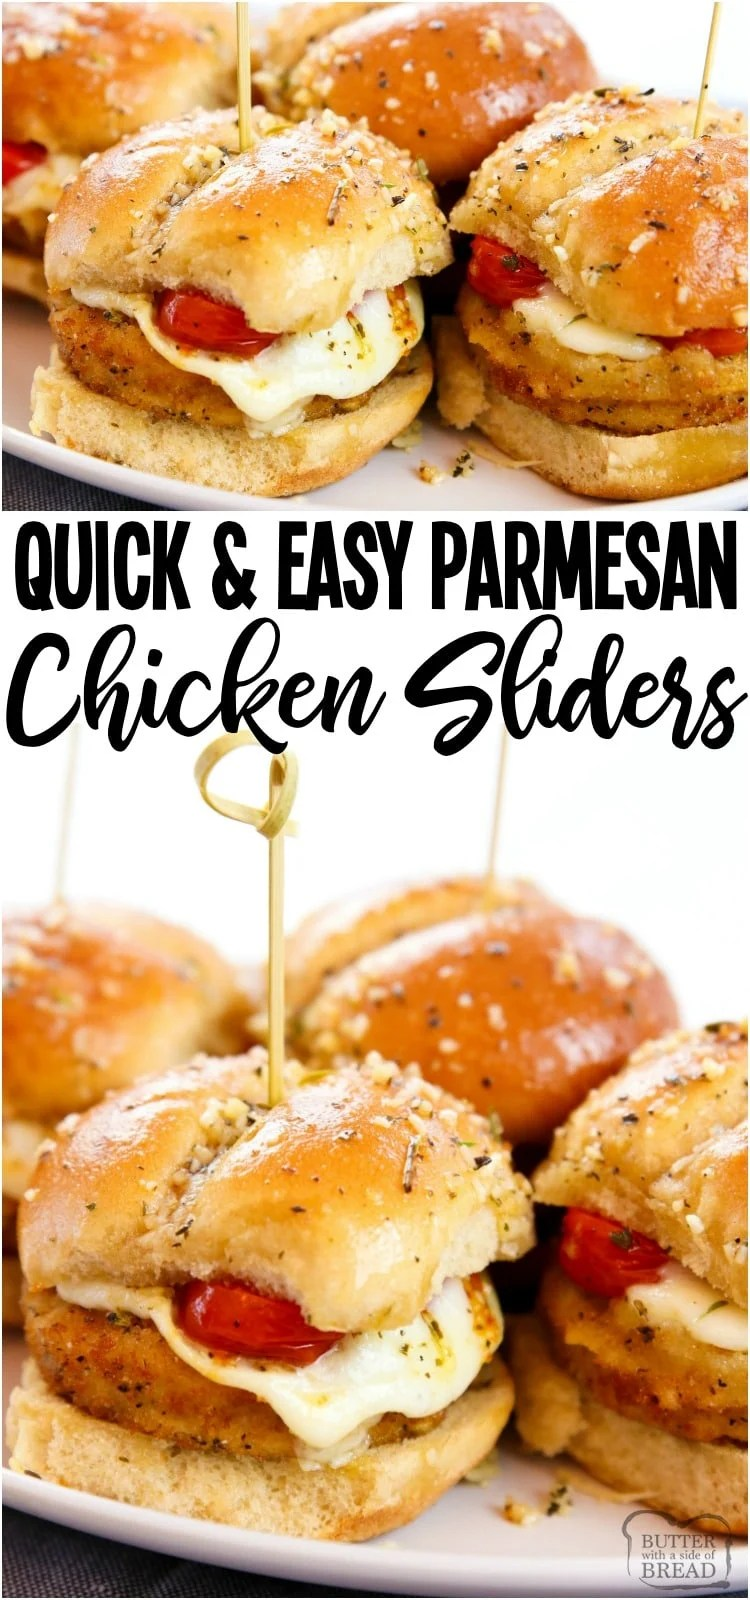 Chicken Parmesan Sliders made in under 30 minutes and perfect for game day! Simple & flavorful Chicken Parm recipe made into easy appetizers. #chicken #sliders #chickenparmesan #chickenparm #appetizer #gameday #recipe from BUTTER WITH A SIDE OF BREAD